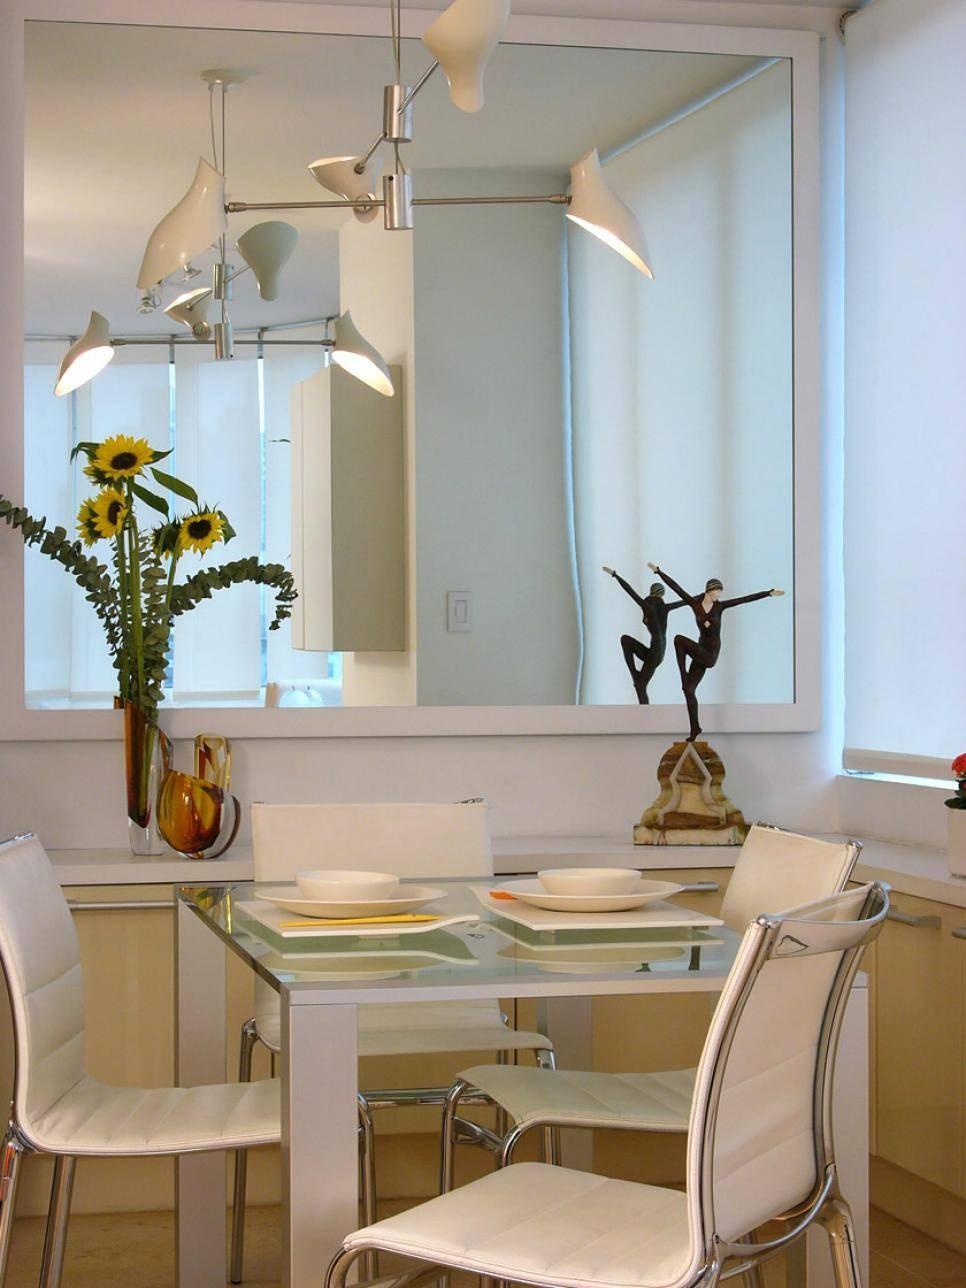 Decorating With Mirrors | Hgtv regarding Feature Wall Mirrors (Image 12 of 25)